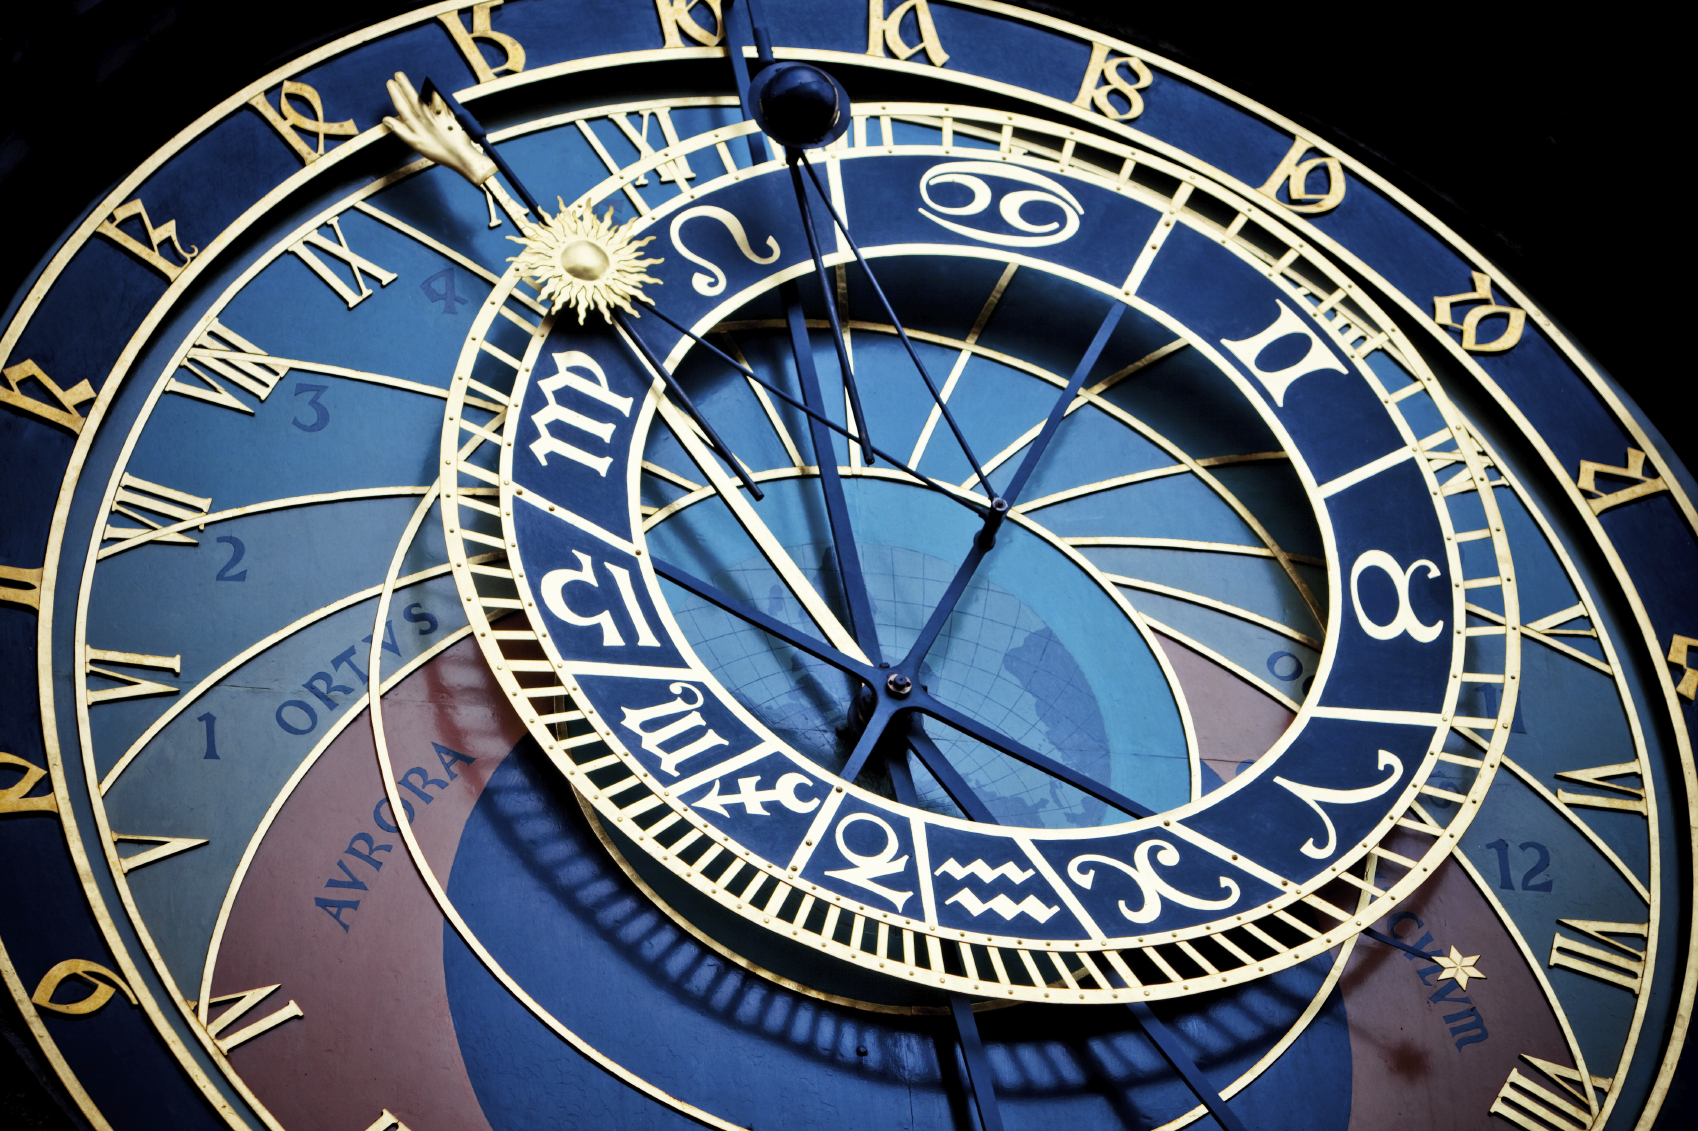 The Prague Astronomical Clock Hd Wallpapers | Wallpapers Box